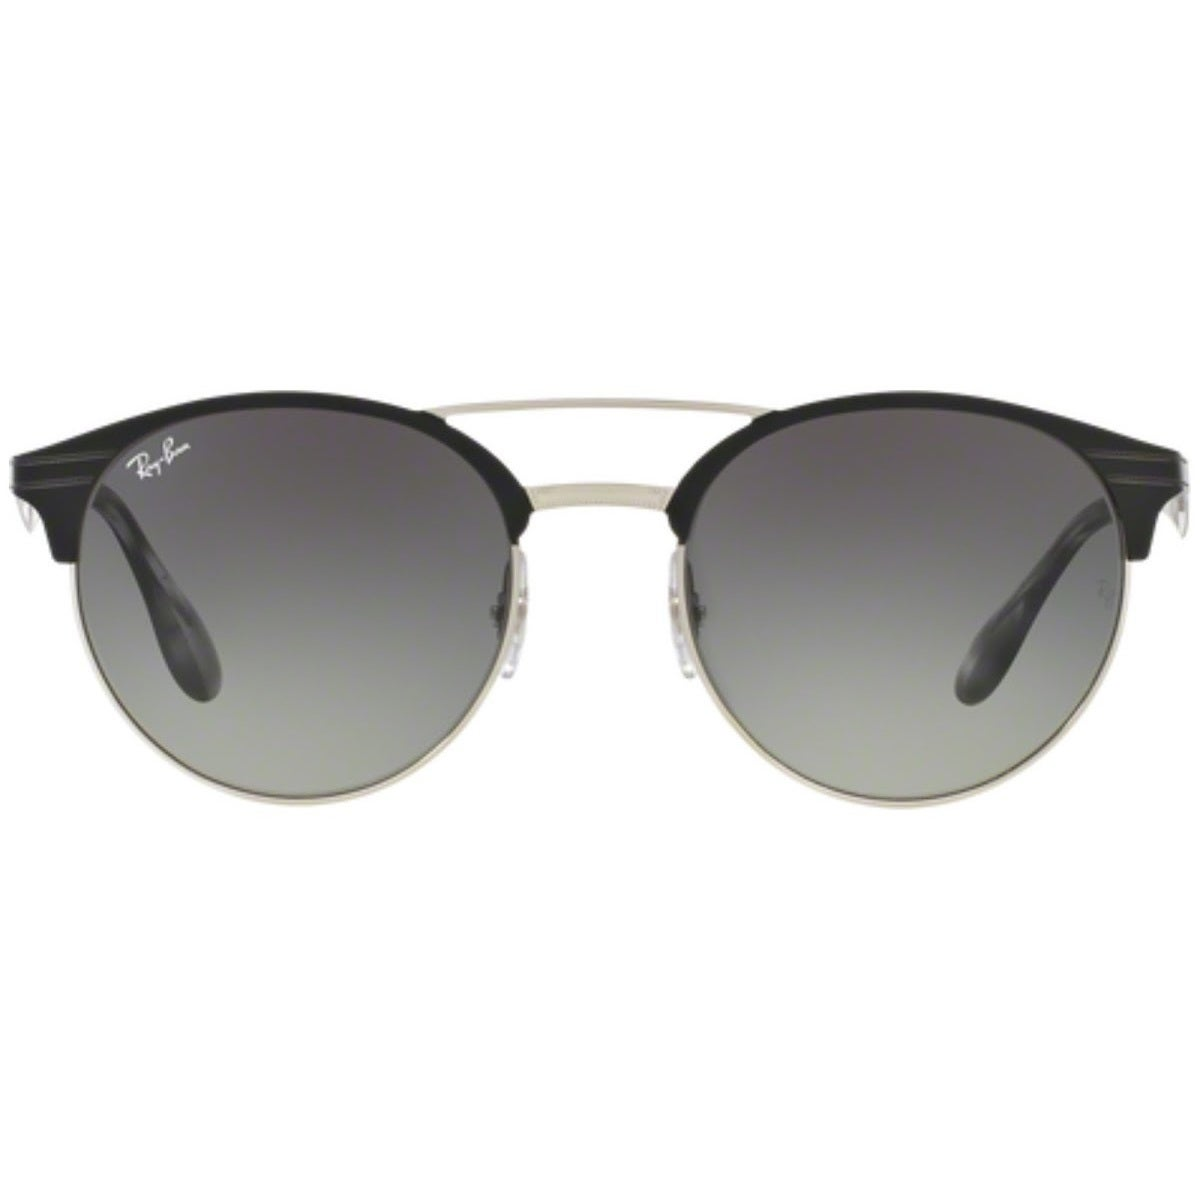 Ray-Ban RB3545 900411 54 mm/20 mm tR5u6rmoe